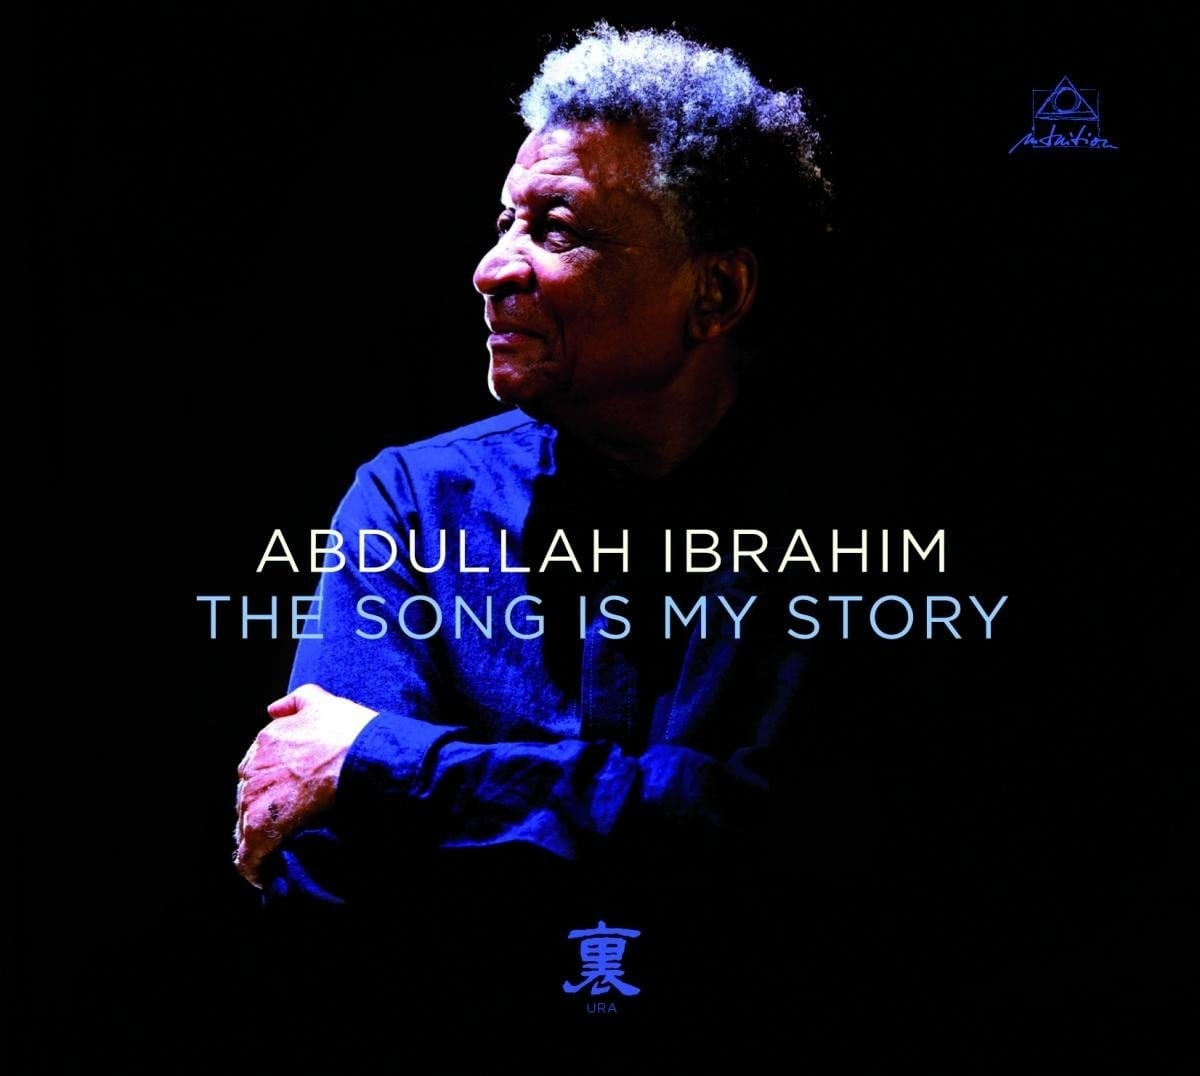 Abdullah Ibrahim: The Song Is My Story